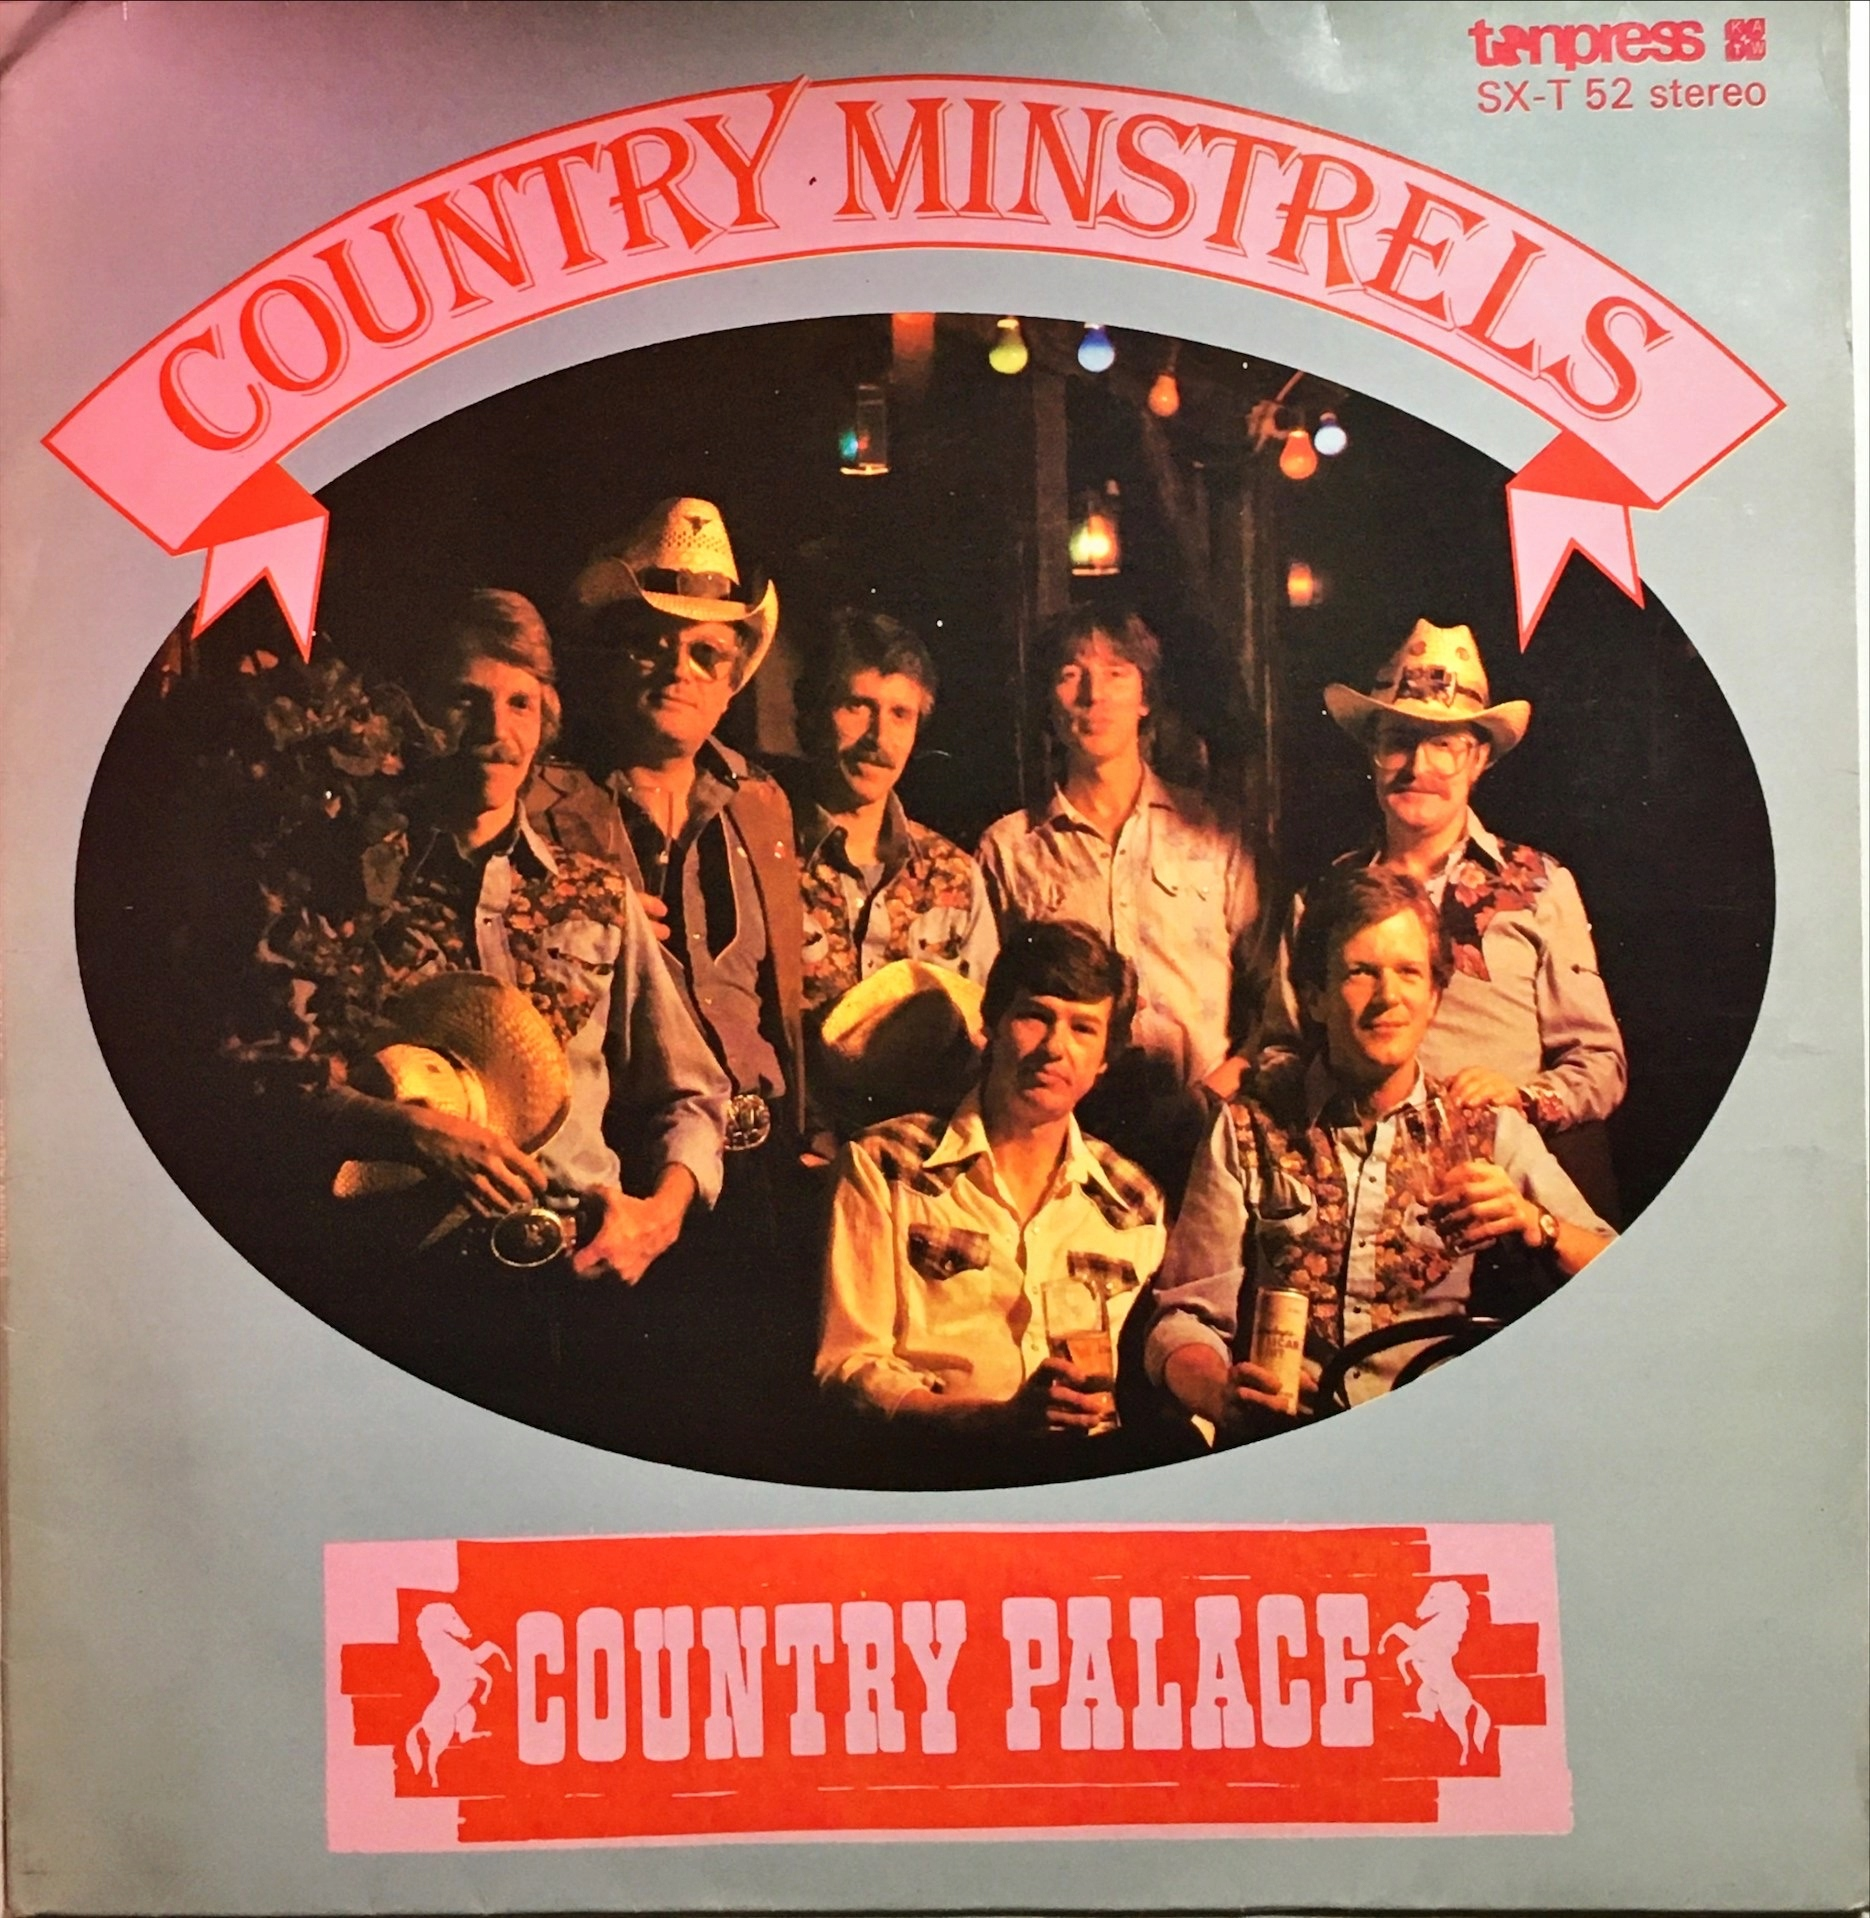 LP Contra Minstrels Country Palace